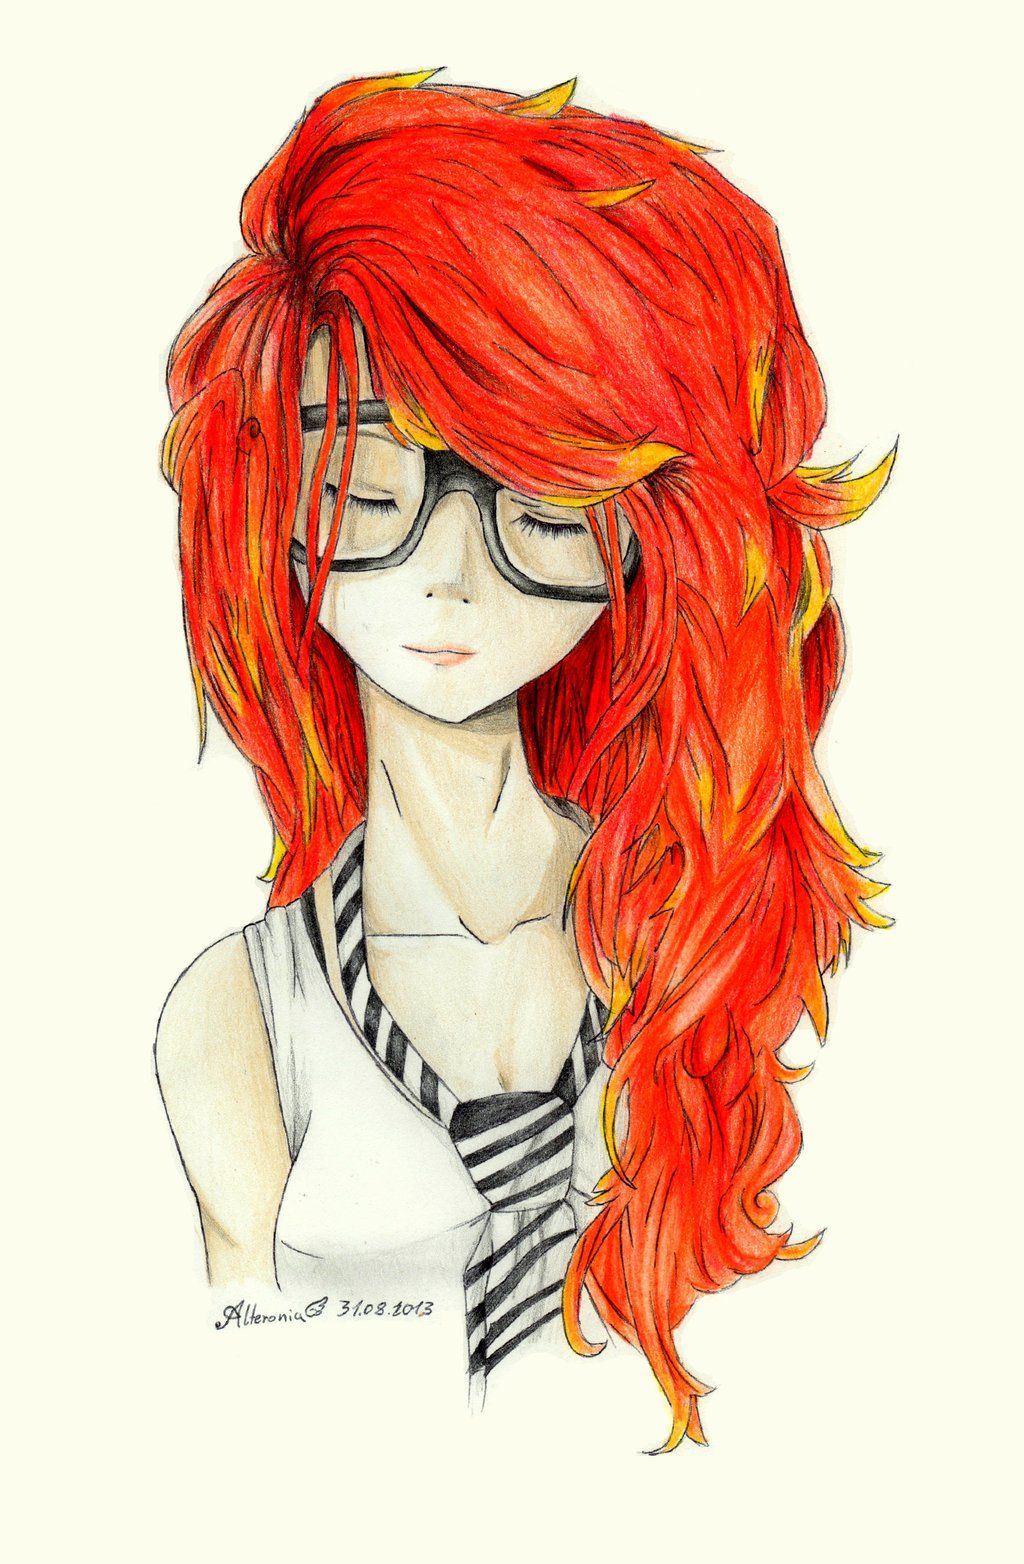 hipster drawing ideas tumblr - Google Search | Hipster ...